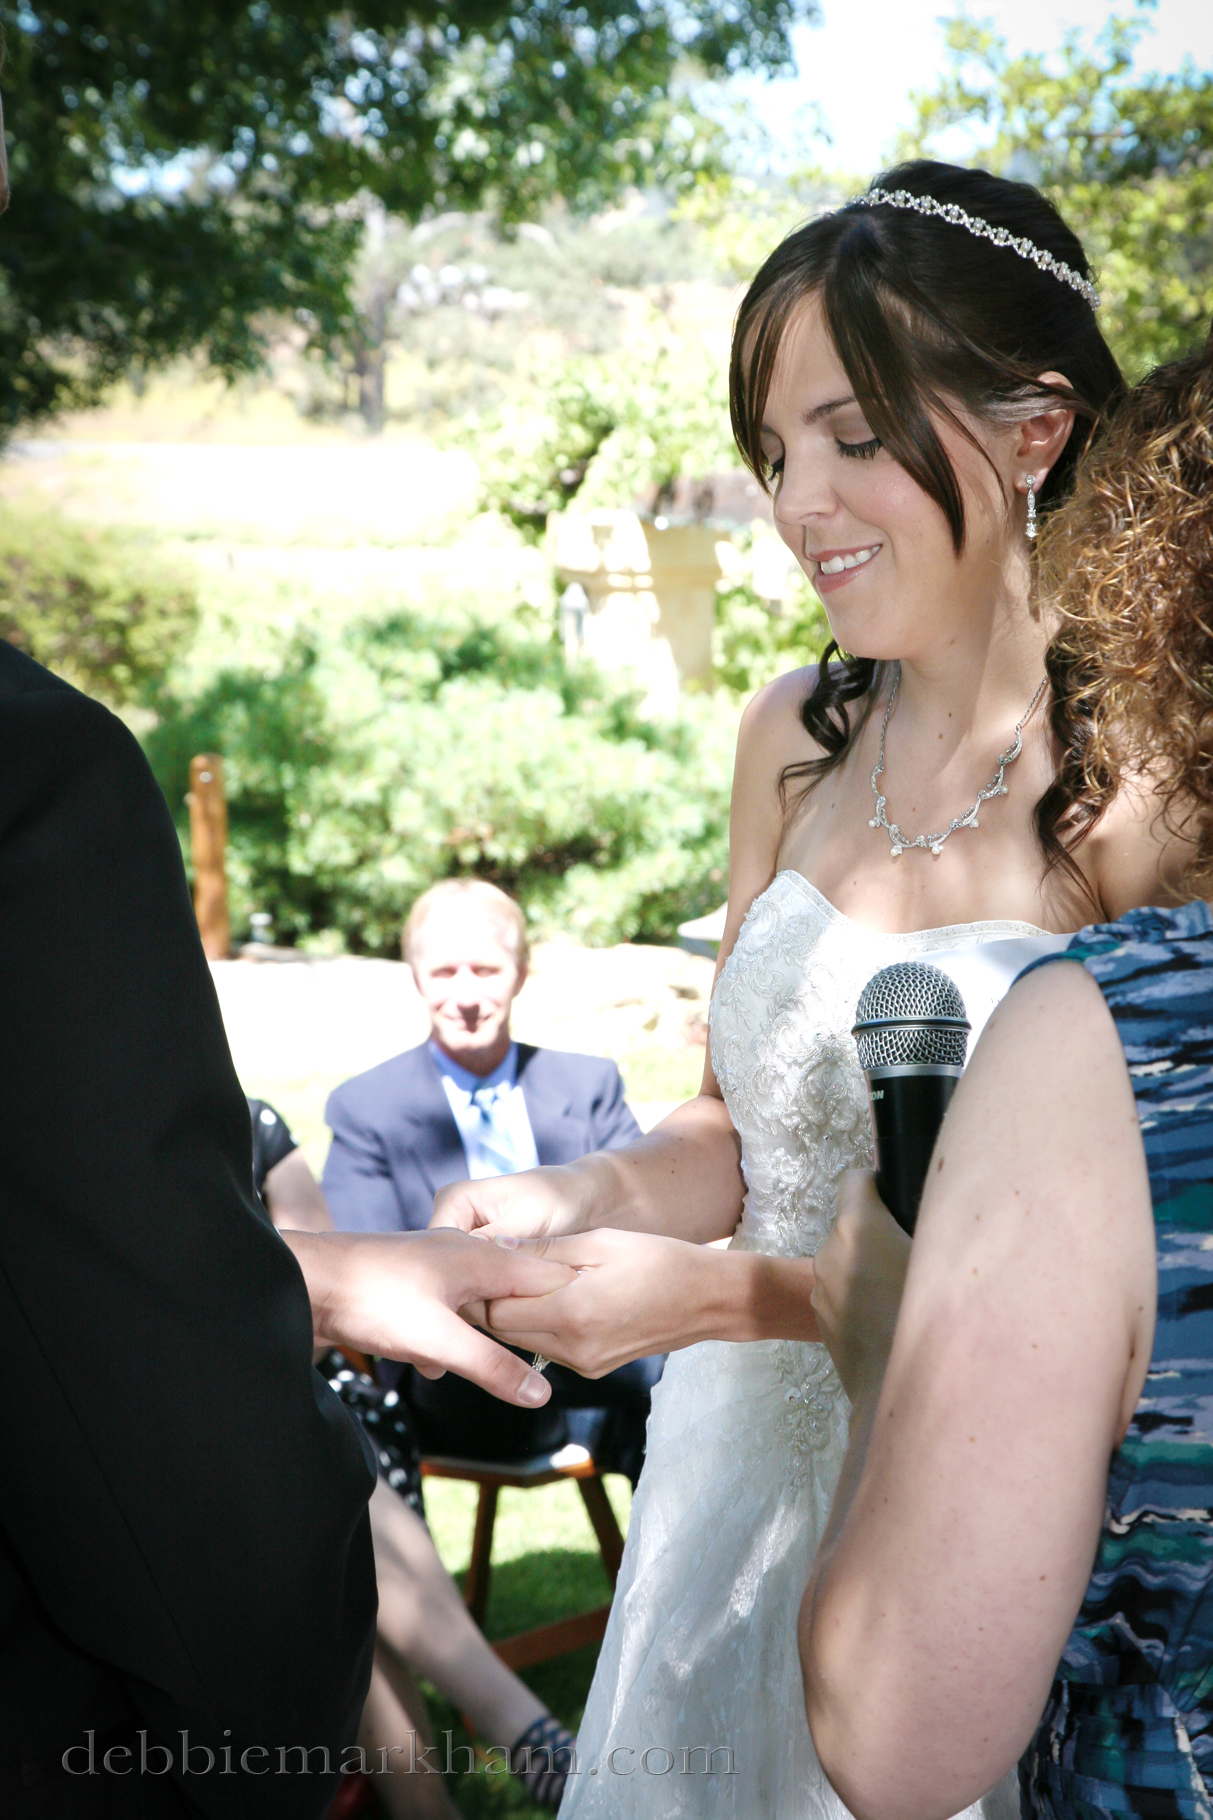 Cambria Photographer Debbie Markham-Professional Wedding Photos at Castoro Winery - Outdoor Ceremony at Vineyard